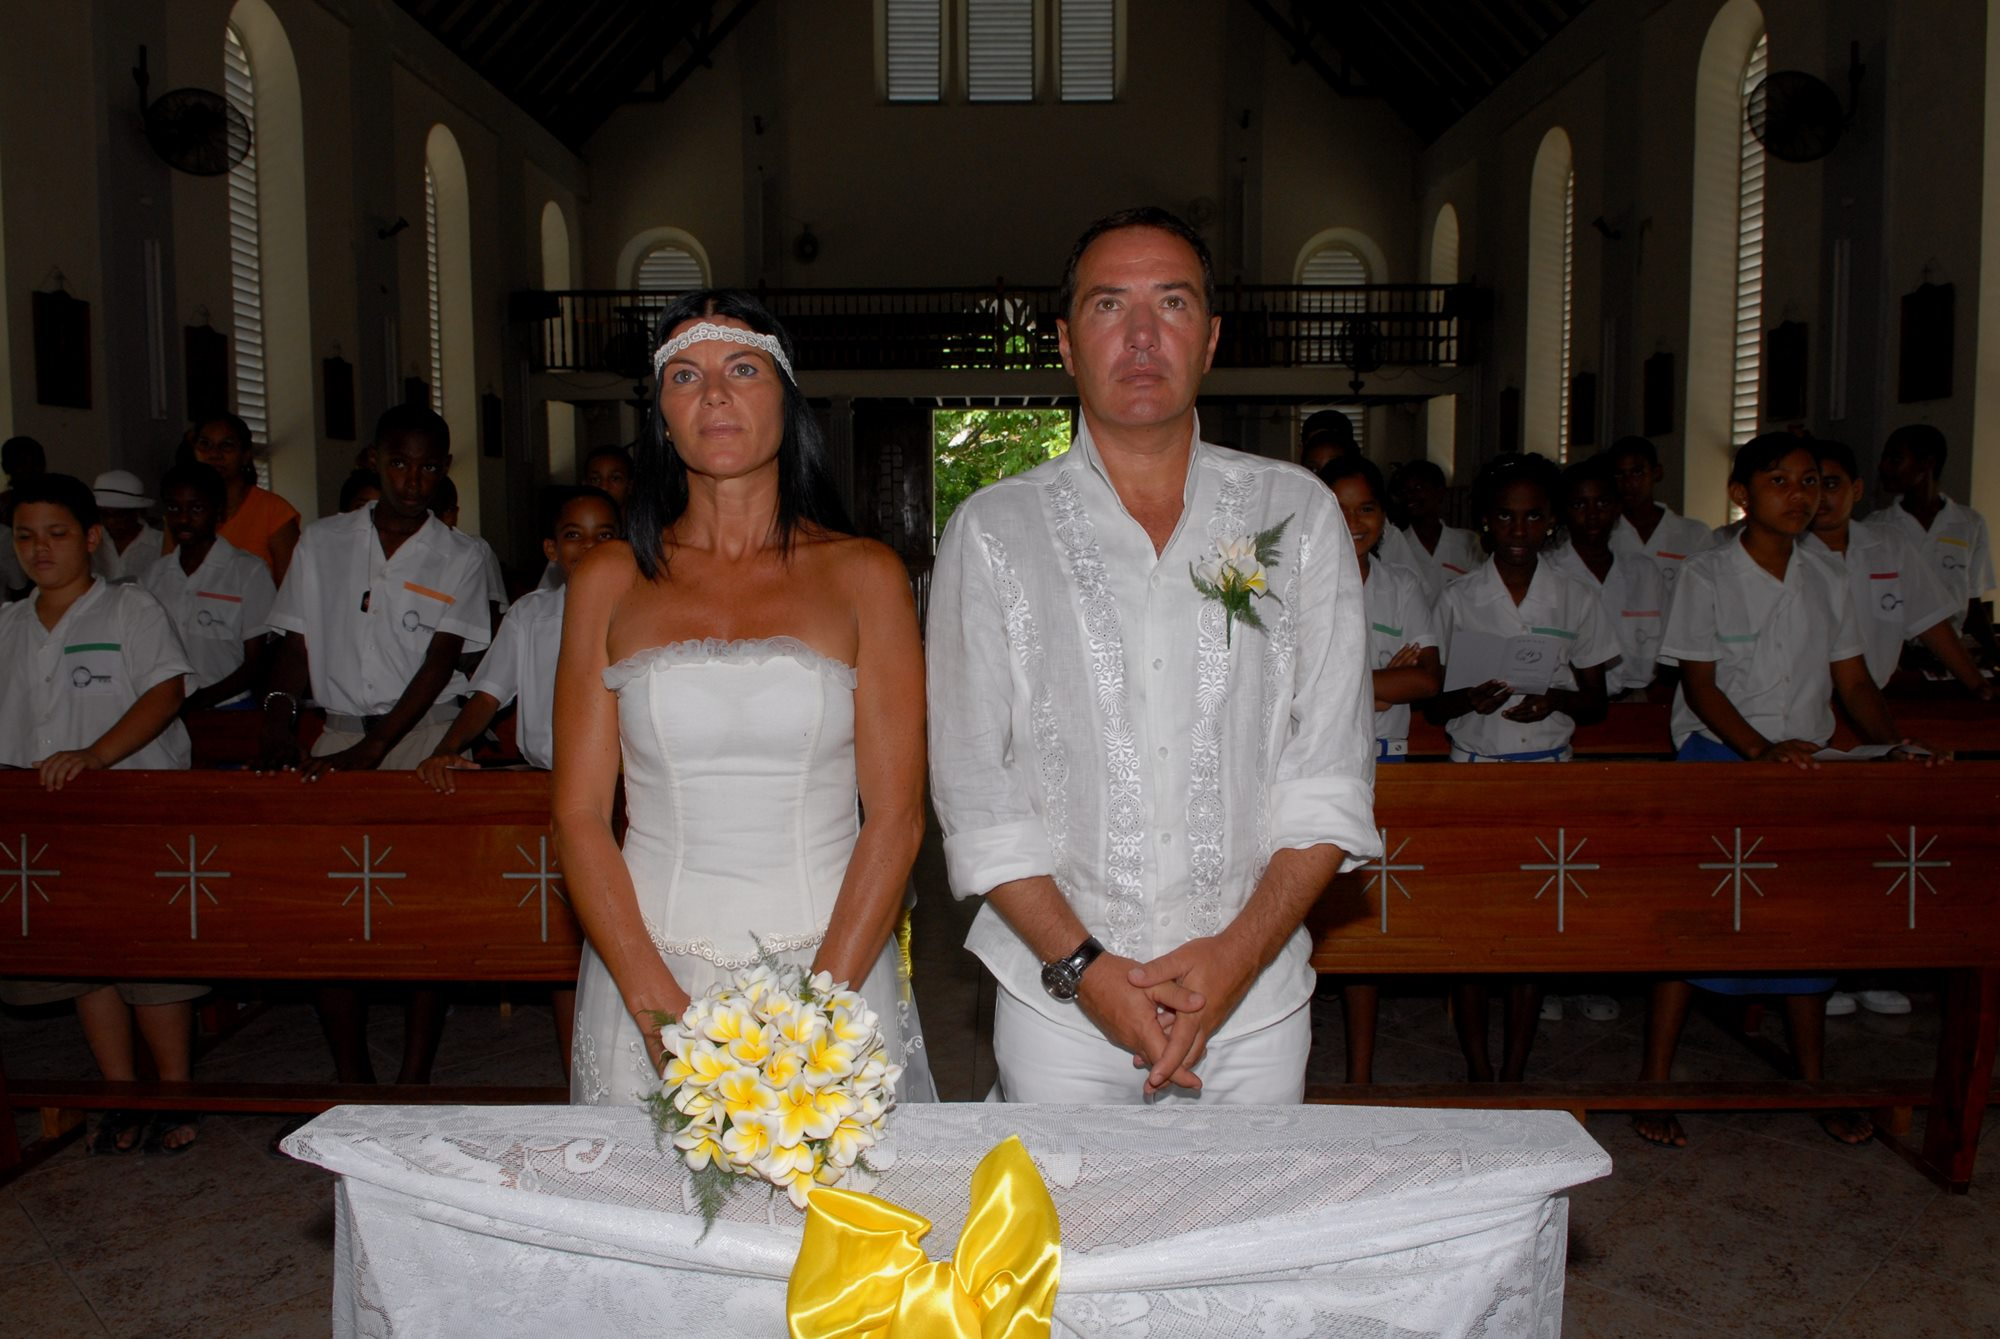 Matrimonio Harry In Chiesa : Matrimonio in chiesa alle seychelles